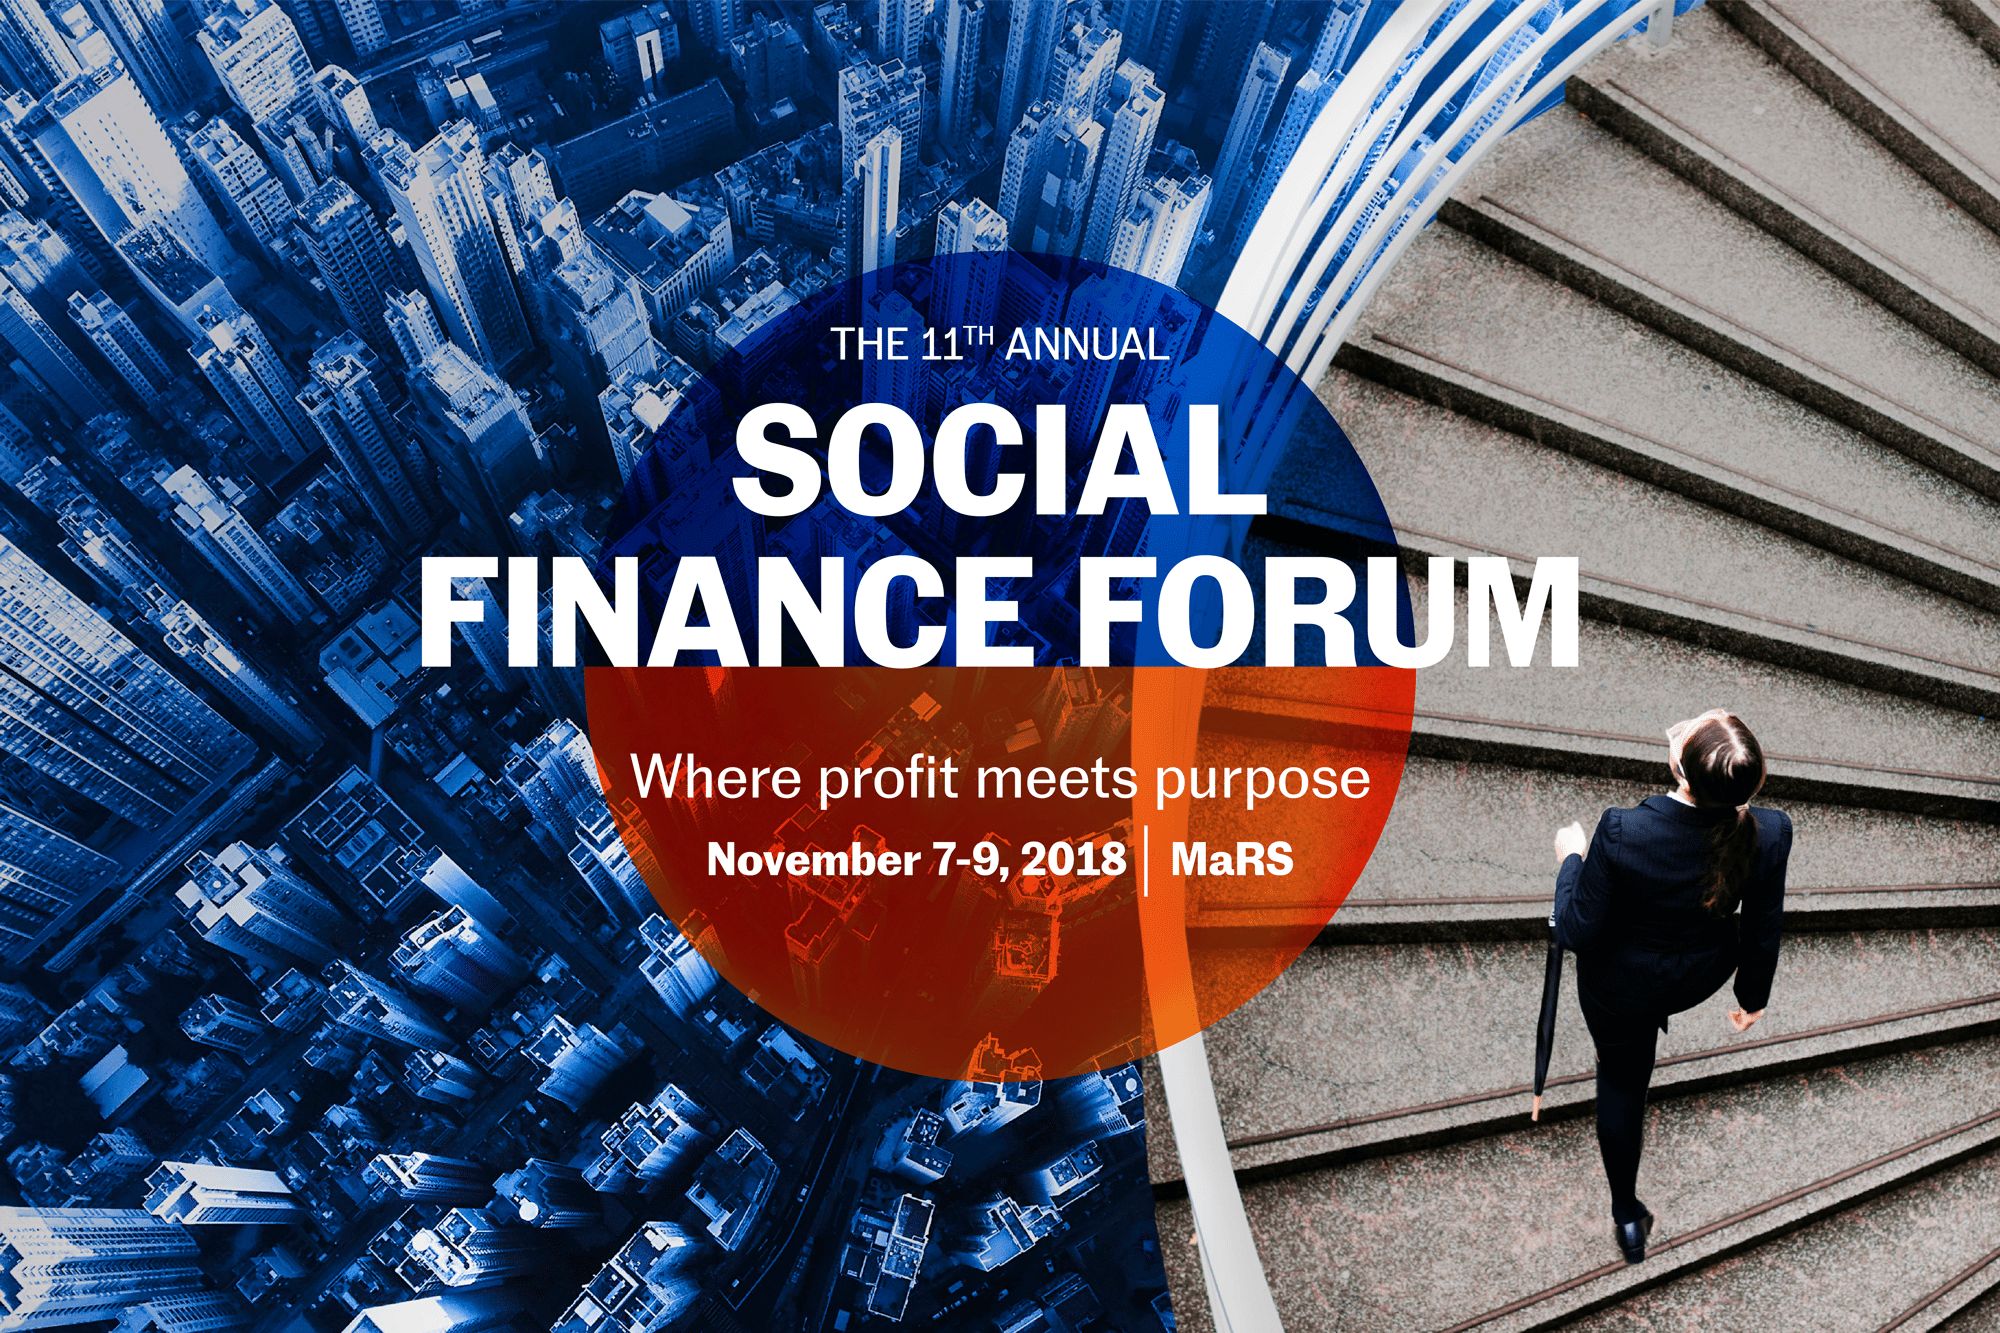 The 11th Annual Social Finance Forum: Where profit meets purpose (November 7-8, 2018)